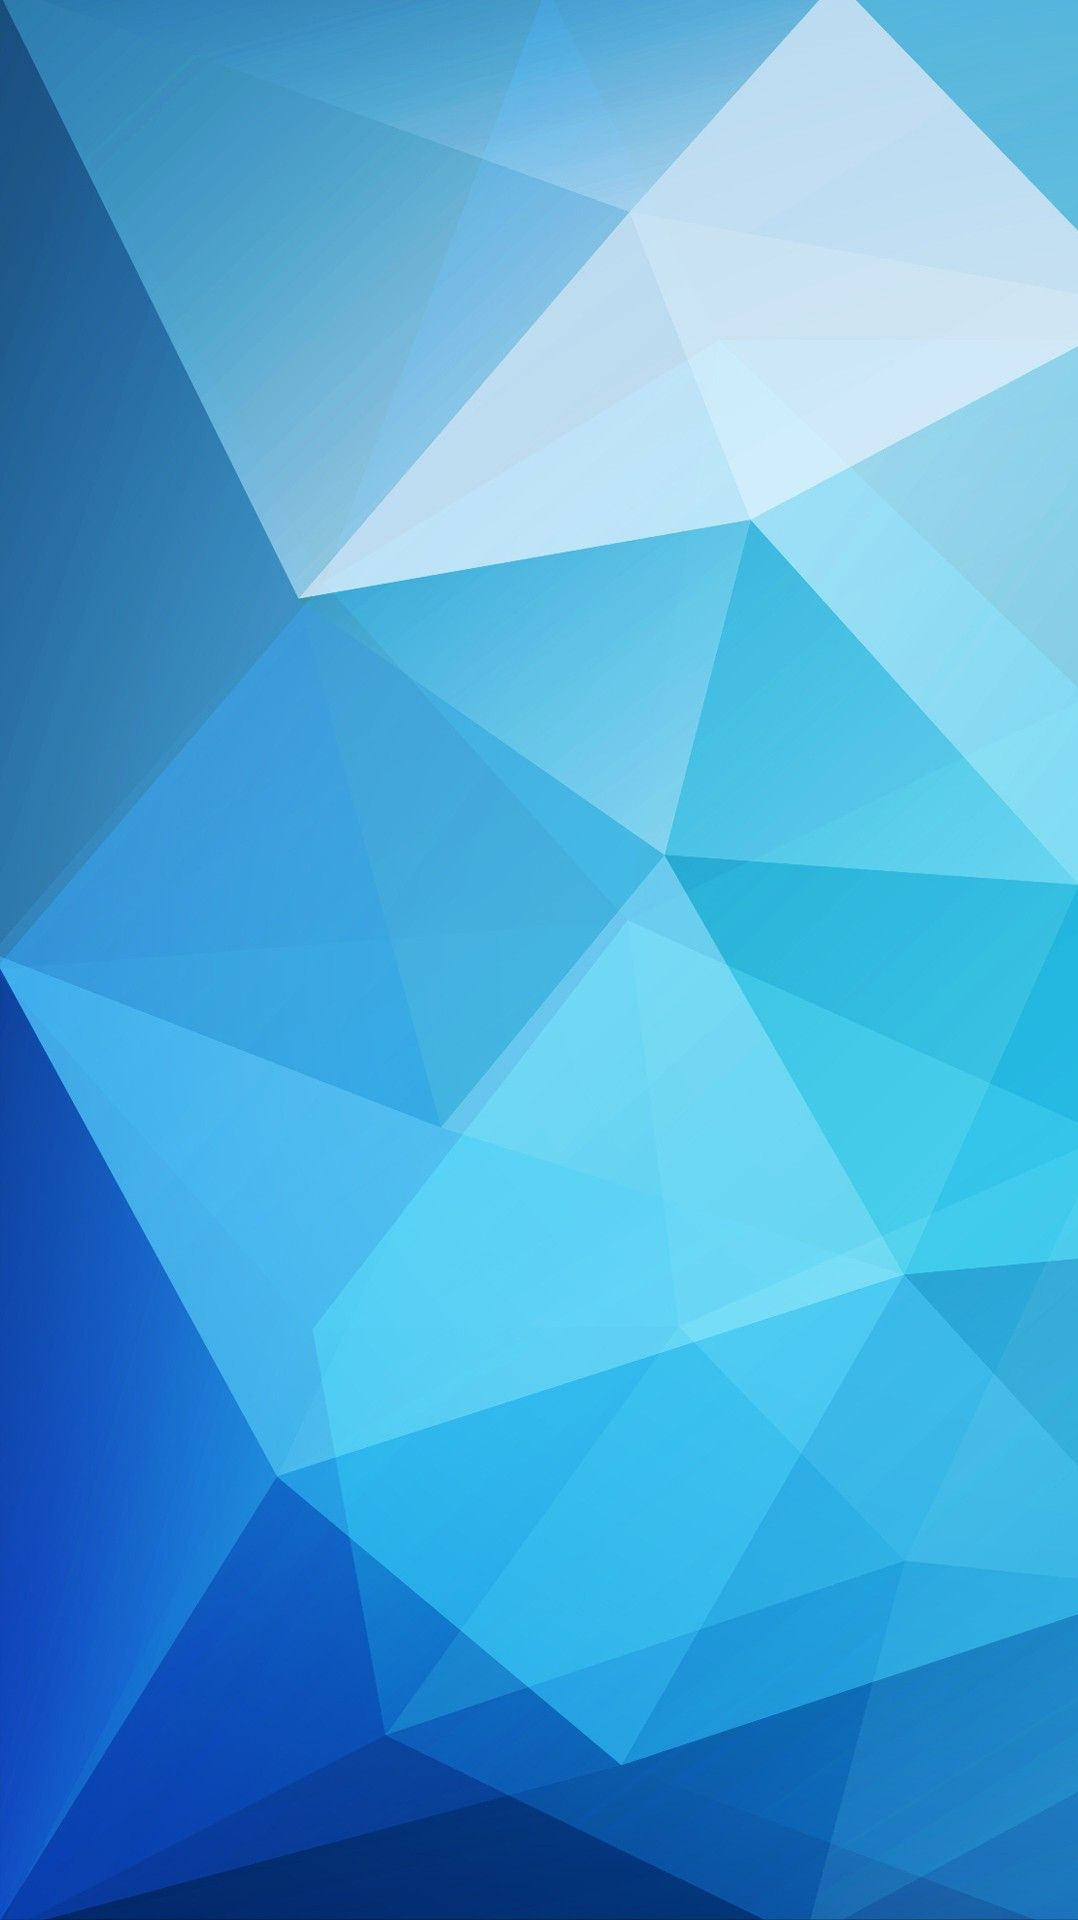 Blue Low Poly Wallpaper Iphone Wallpaper Wallpaper Iphone Christmas Blue Wallpaper Iphone Christmas Wallpaper Backgrounds